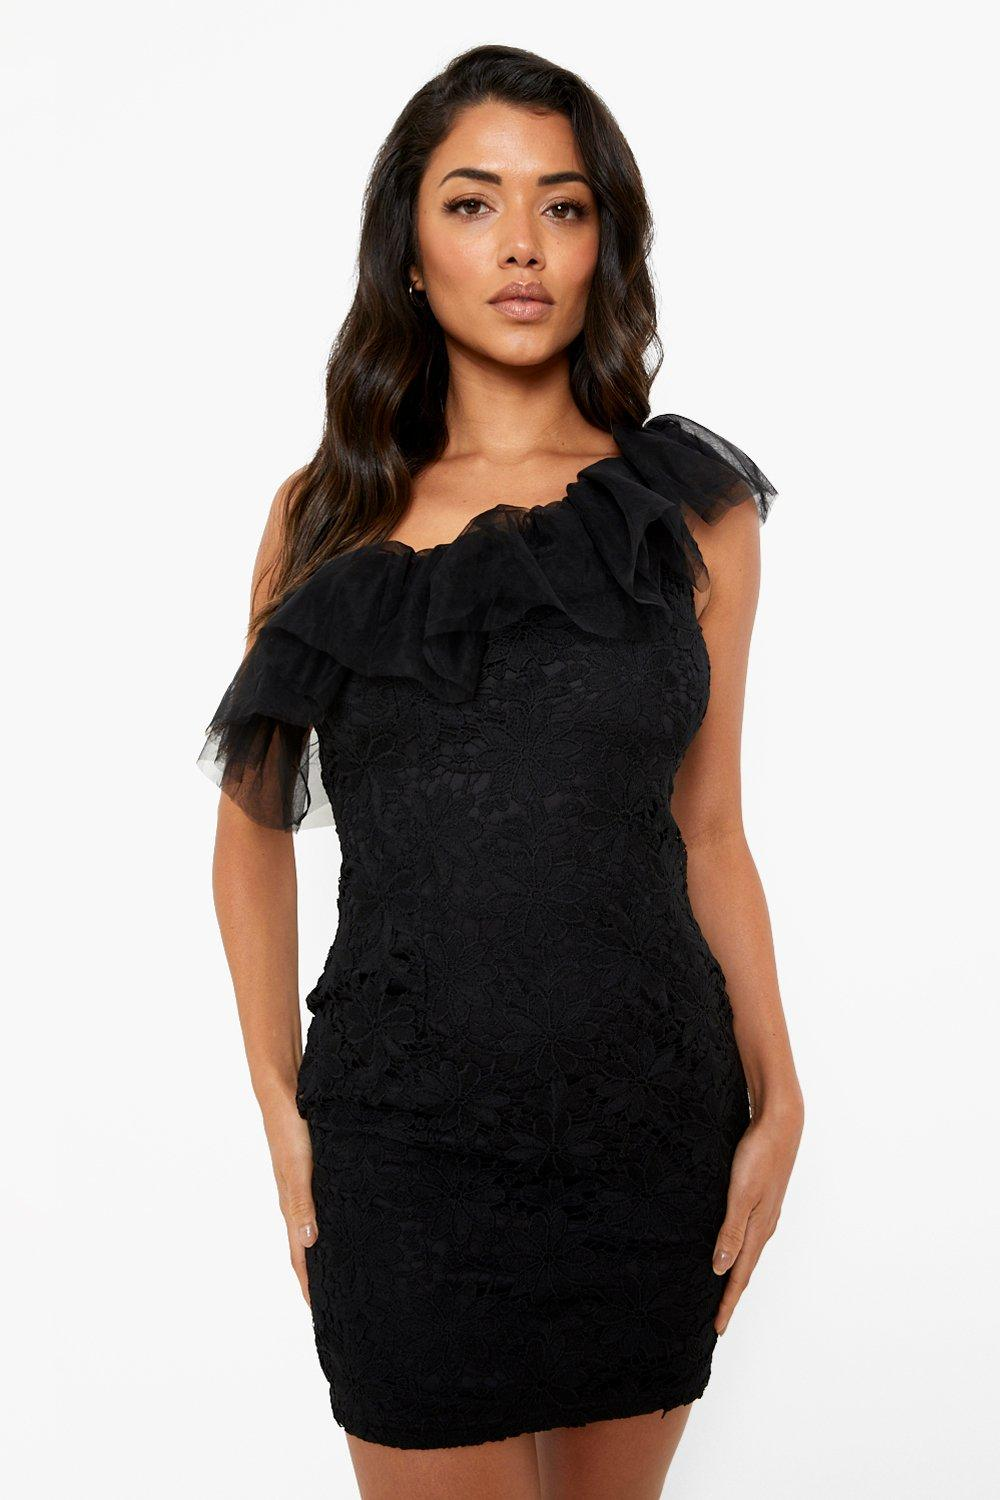 80s Dresses | Casual to Party Dresses Womens One Shoulder Lace Ruffle Mini Dress - Black - 10 $24.00 AT vintagedancer.com